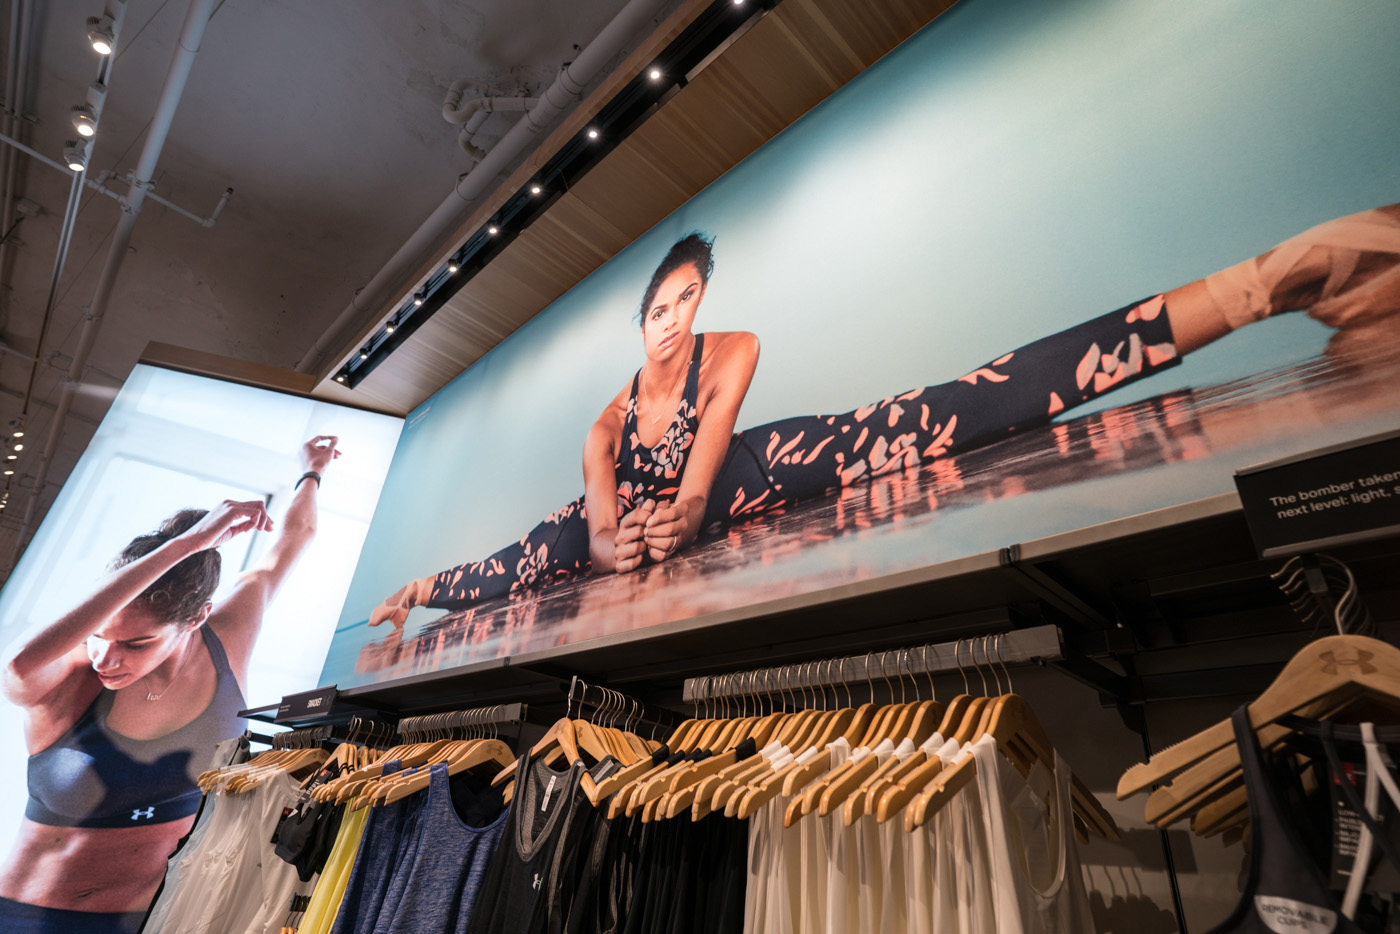 printed display sign signage fabric SEG printing tension stretch silicone edge graphics visuals merchandising marketing advertising in-store under armour